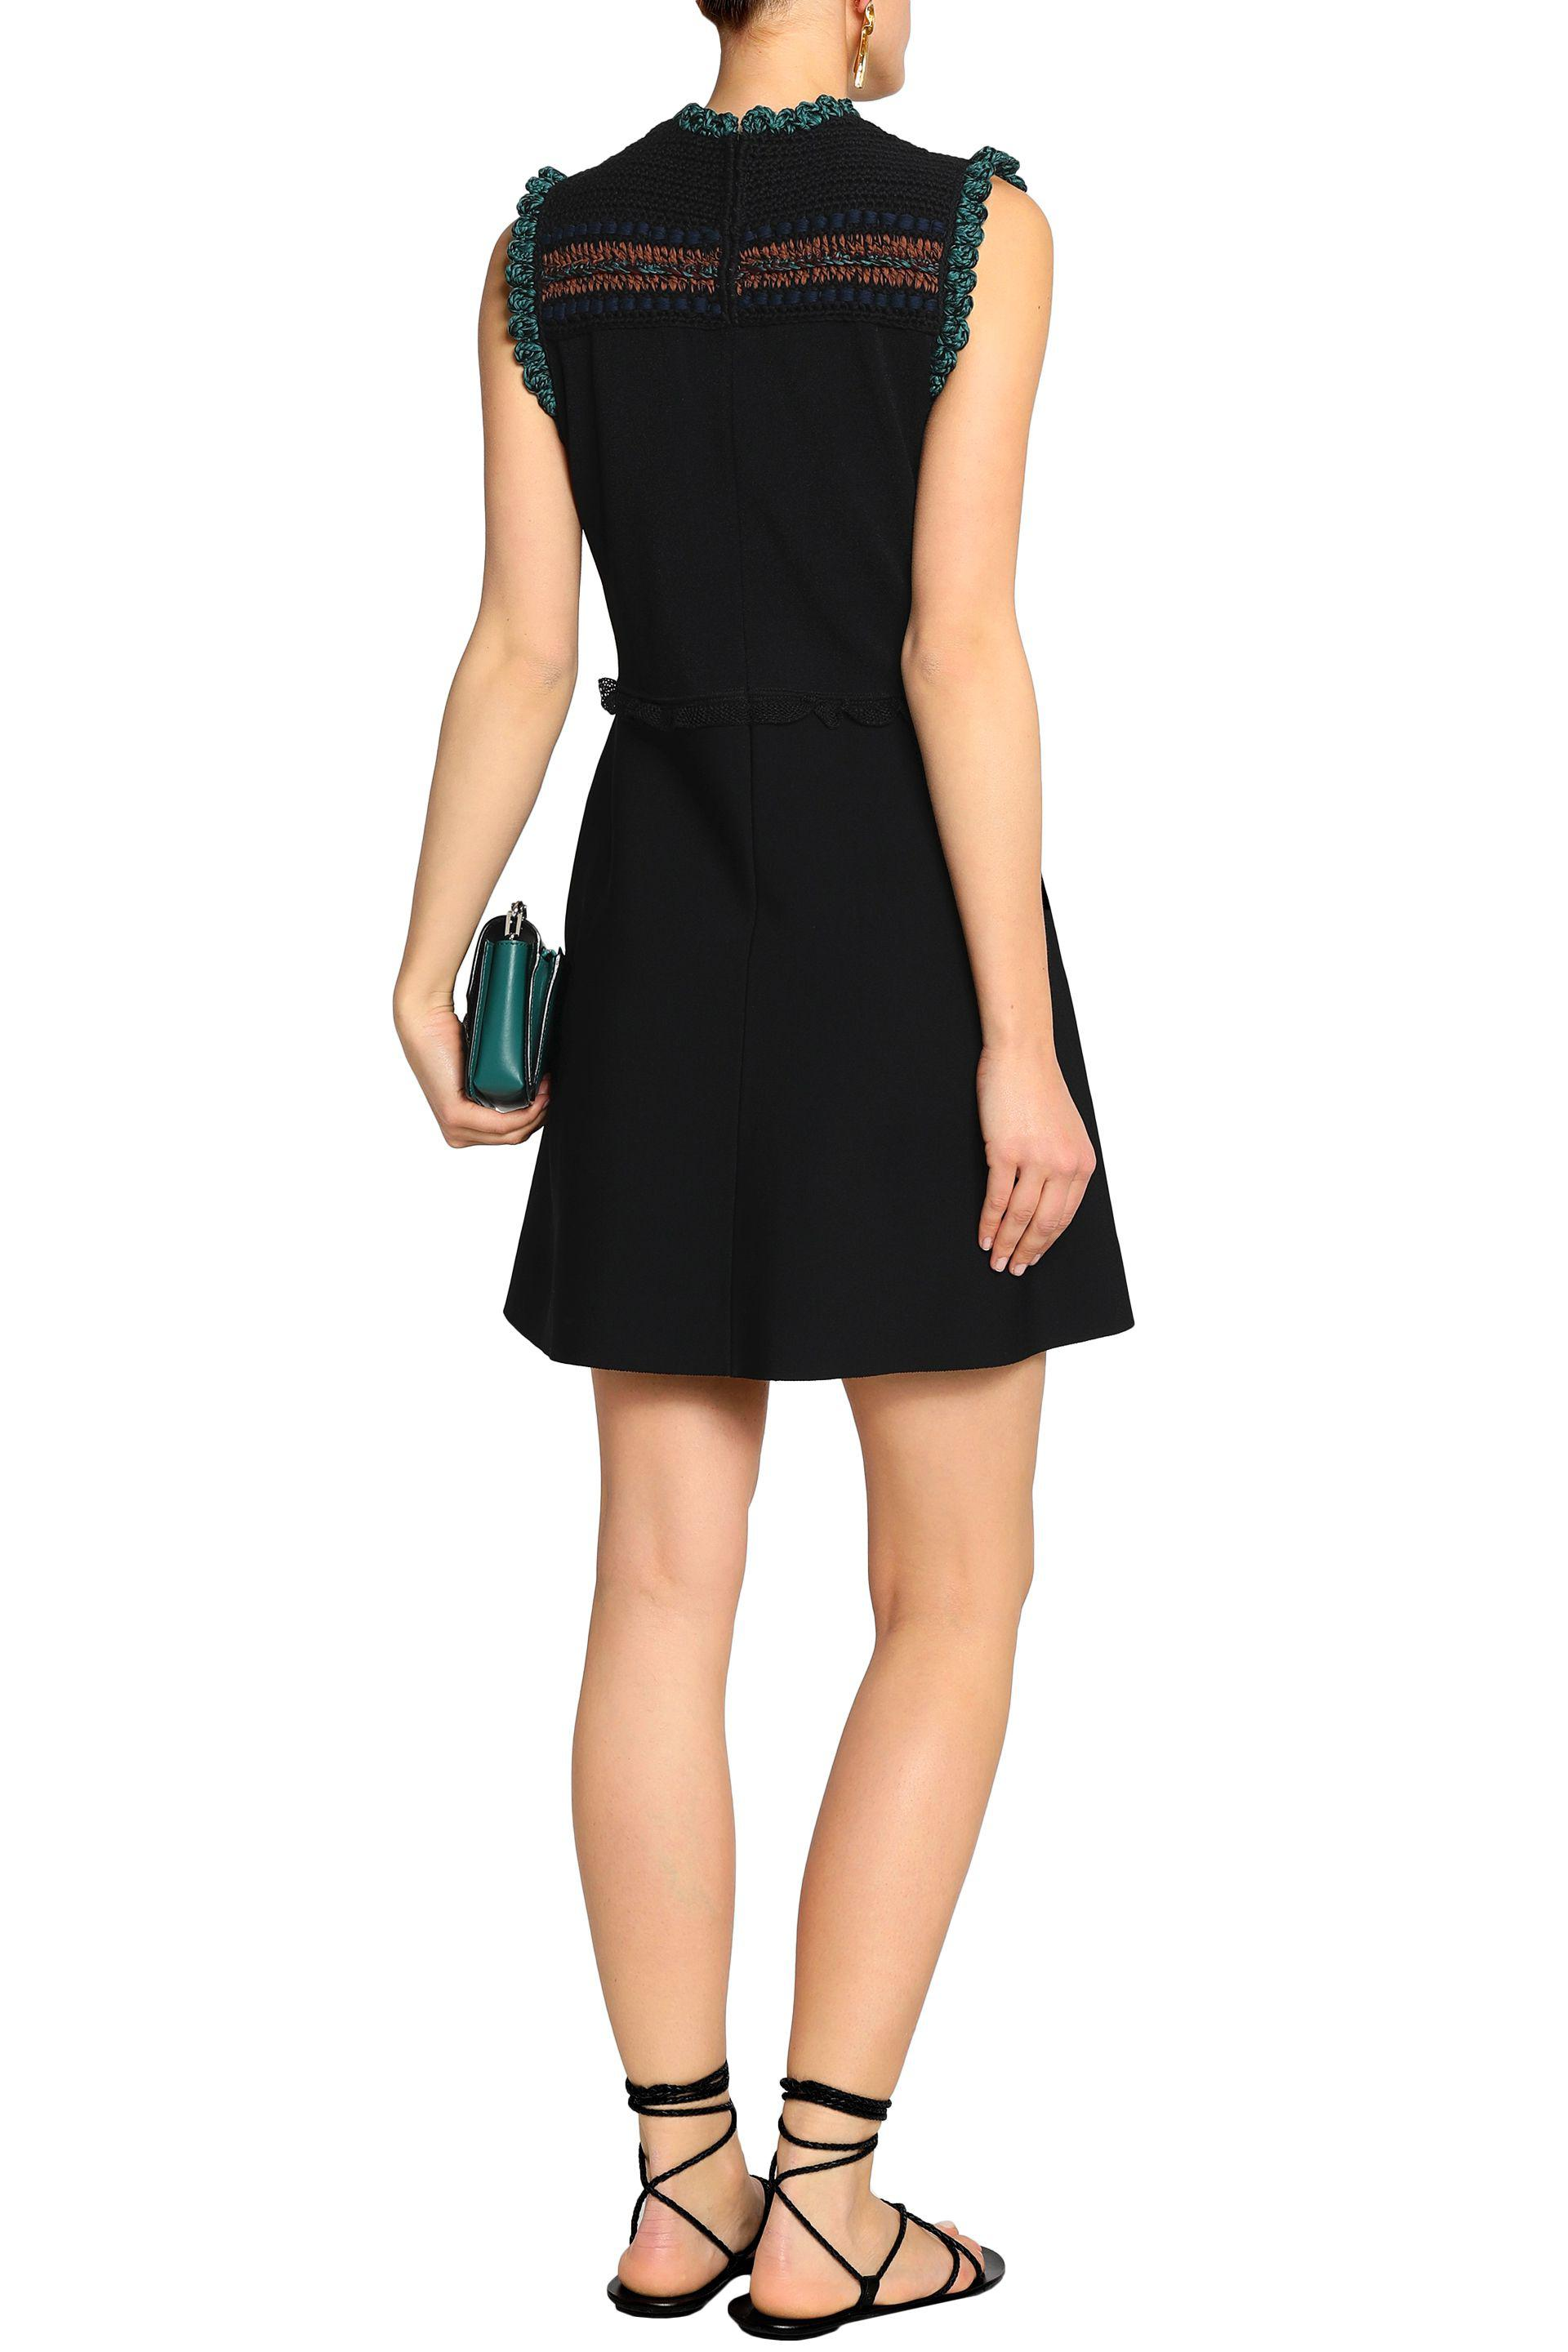 Valentino Woman Embroidered Crochet-knit And Ponte Mini Dress Black Size L Valentino Unisex Free Shipping Cheap Quality Clearance Online Fake Cheap New Arrival eH4XgZzIi0